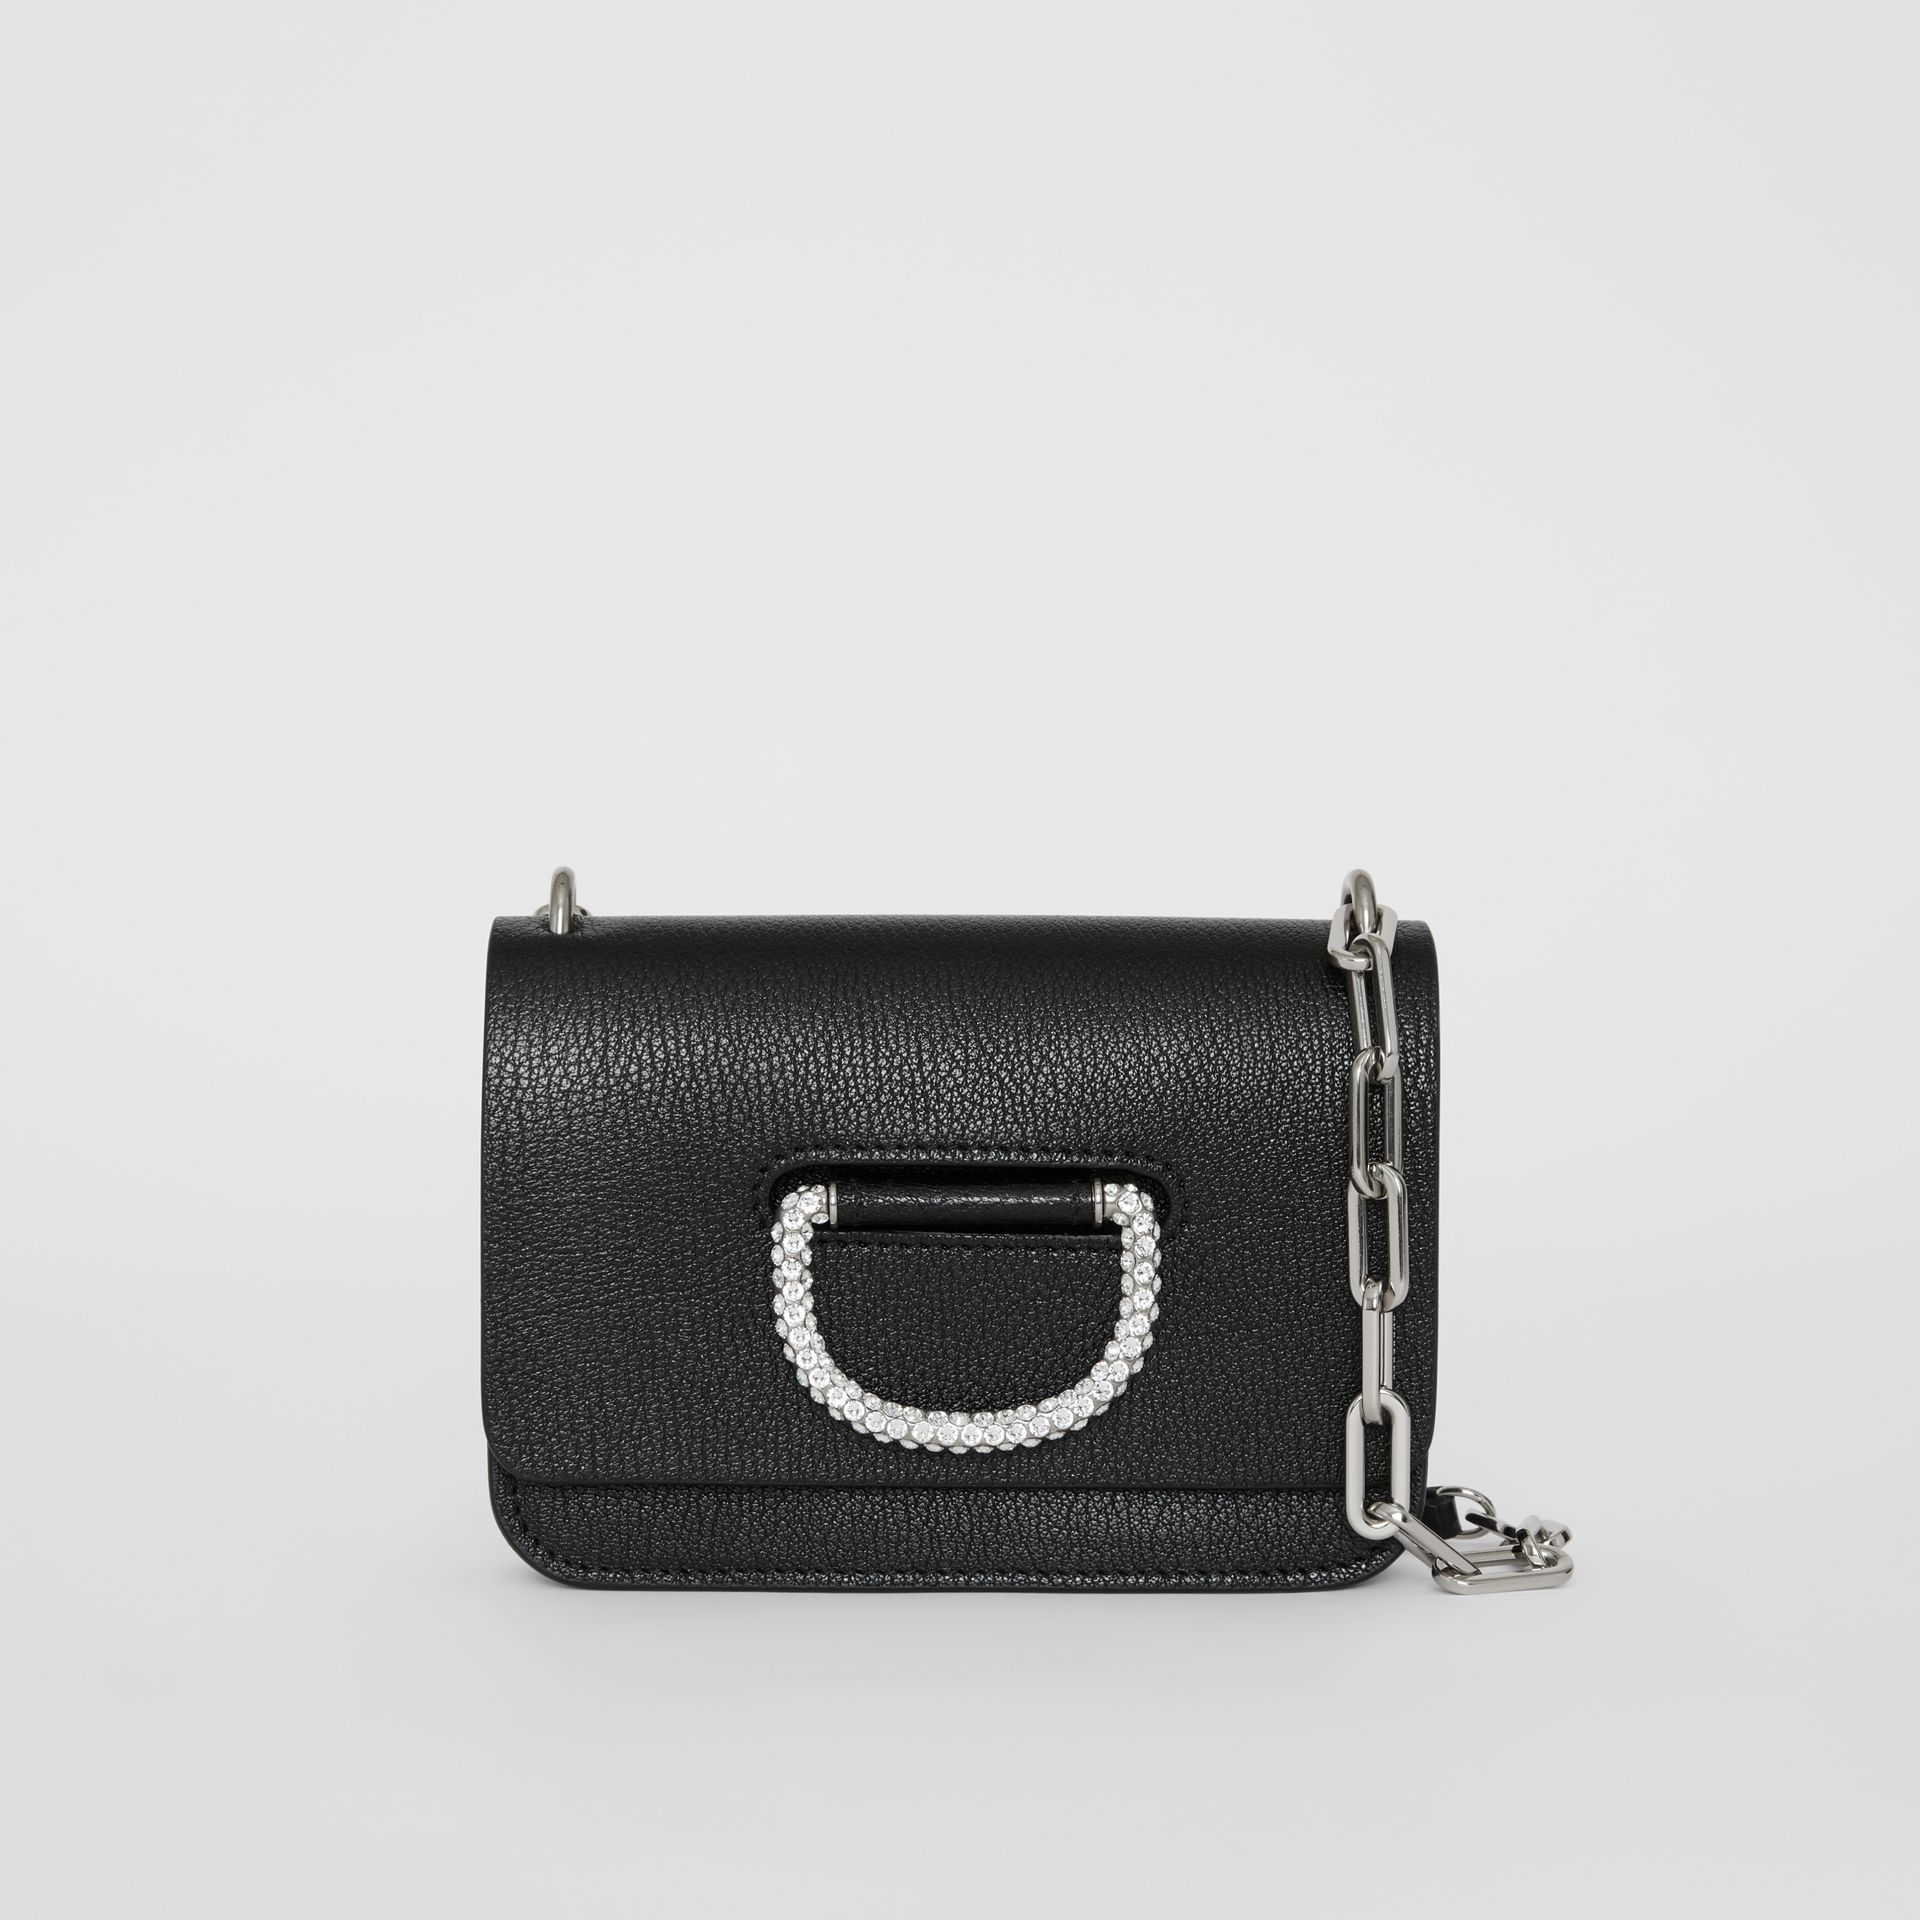 Borsa The D-ring mini in pelle con cristalli (Nero) - Donna | Burberry - immagine della galleria 0